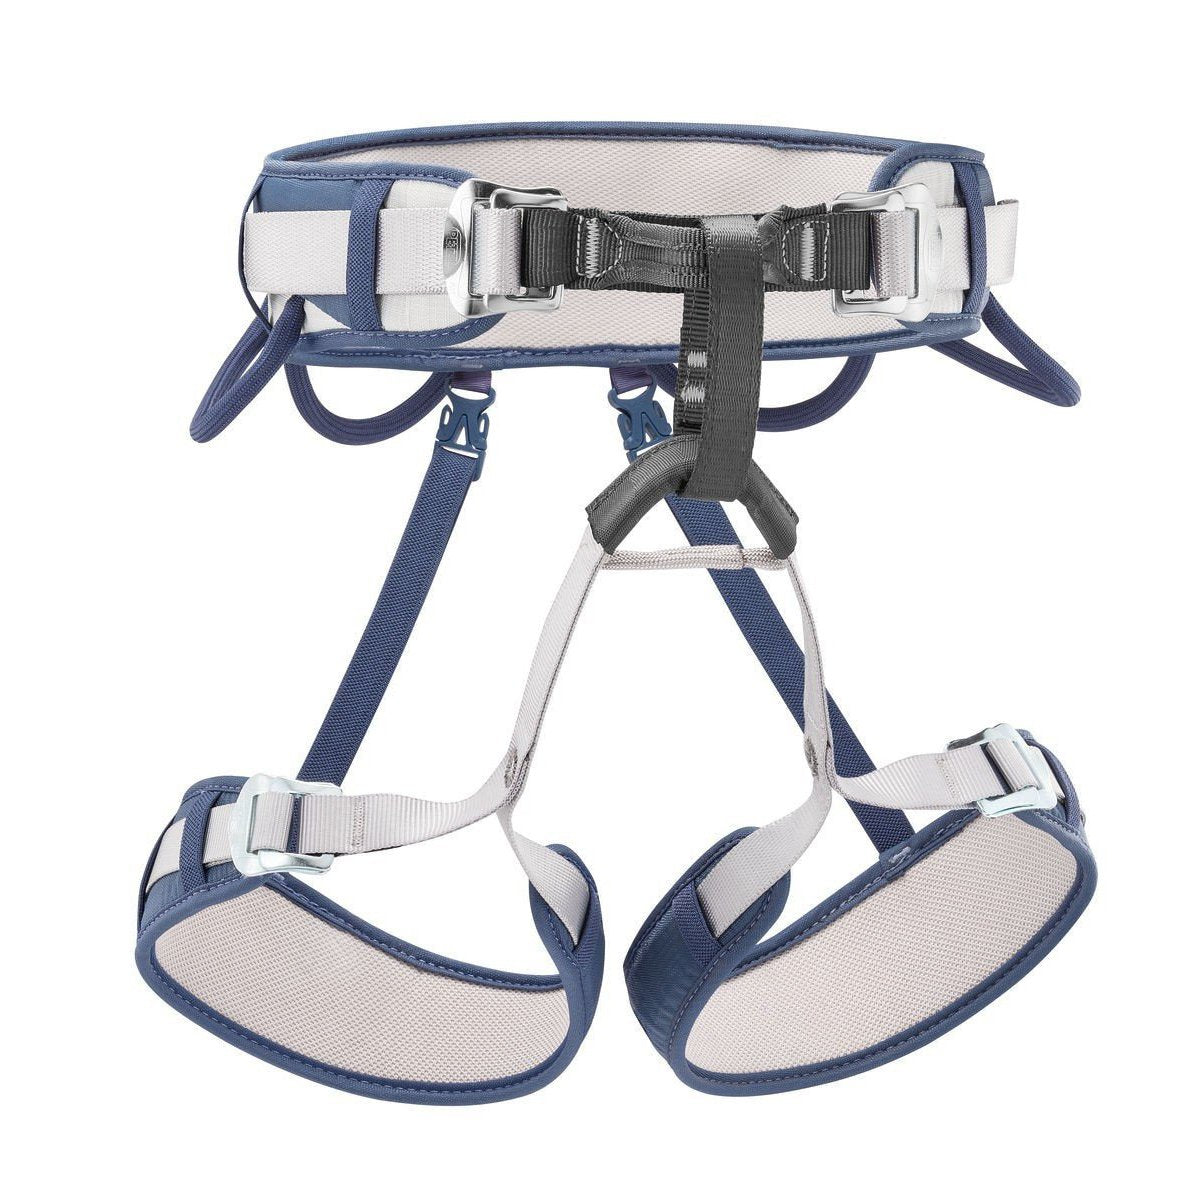 Petzl Corax Harness, front view, in blue, grey and black colours